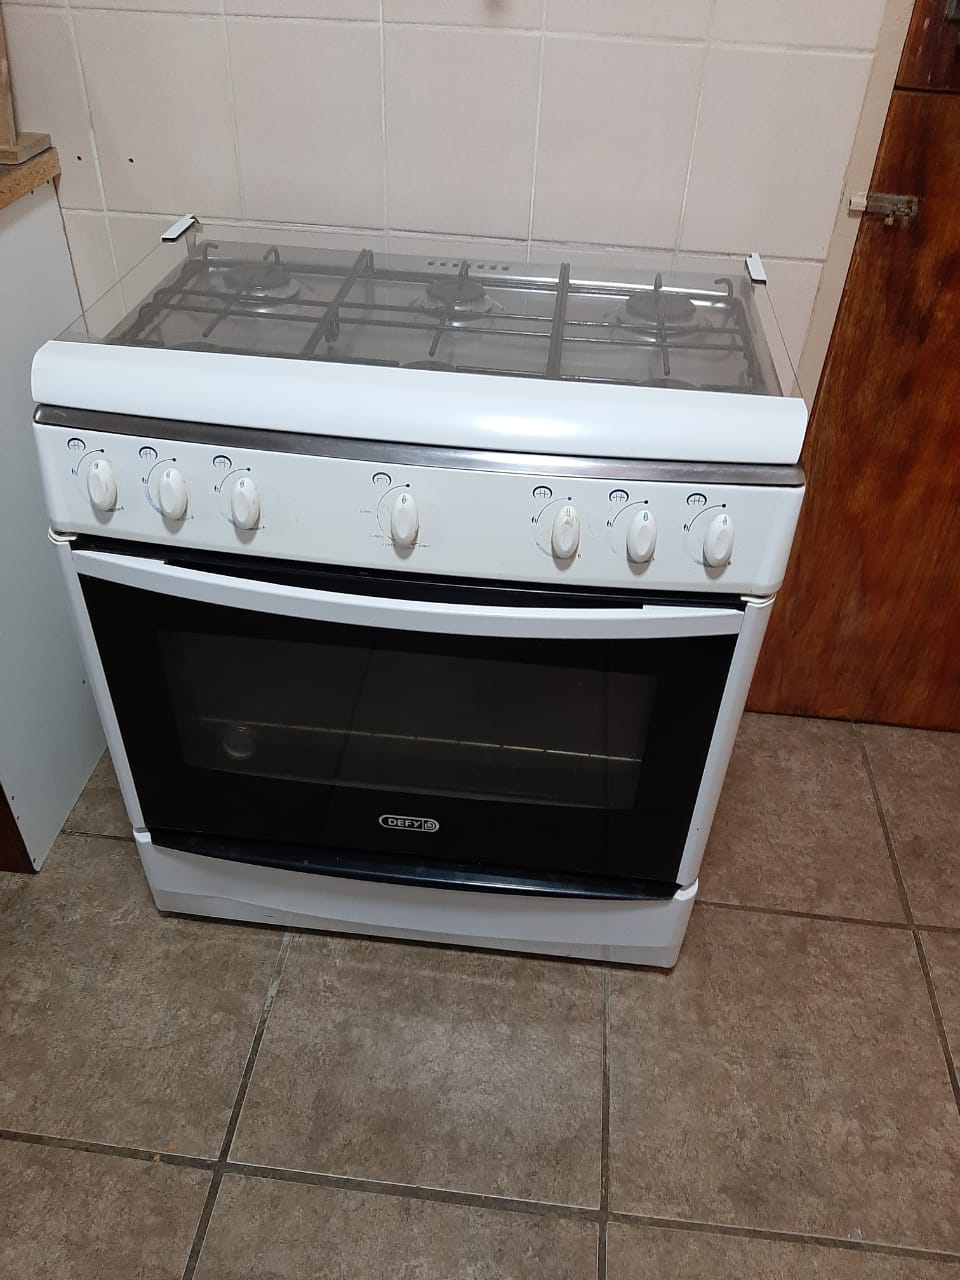 Defy Gas stove and oven